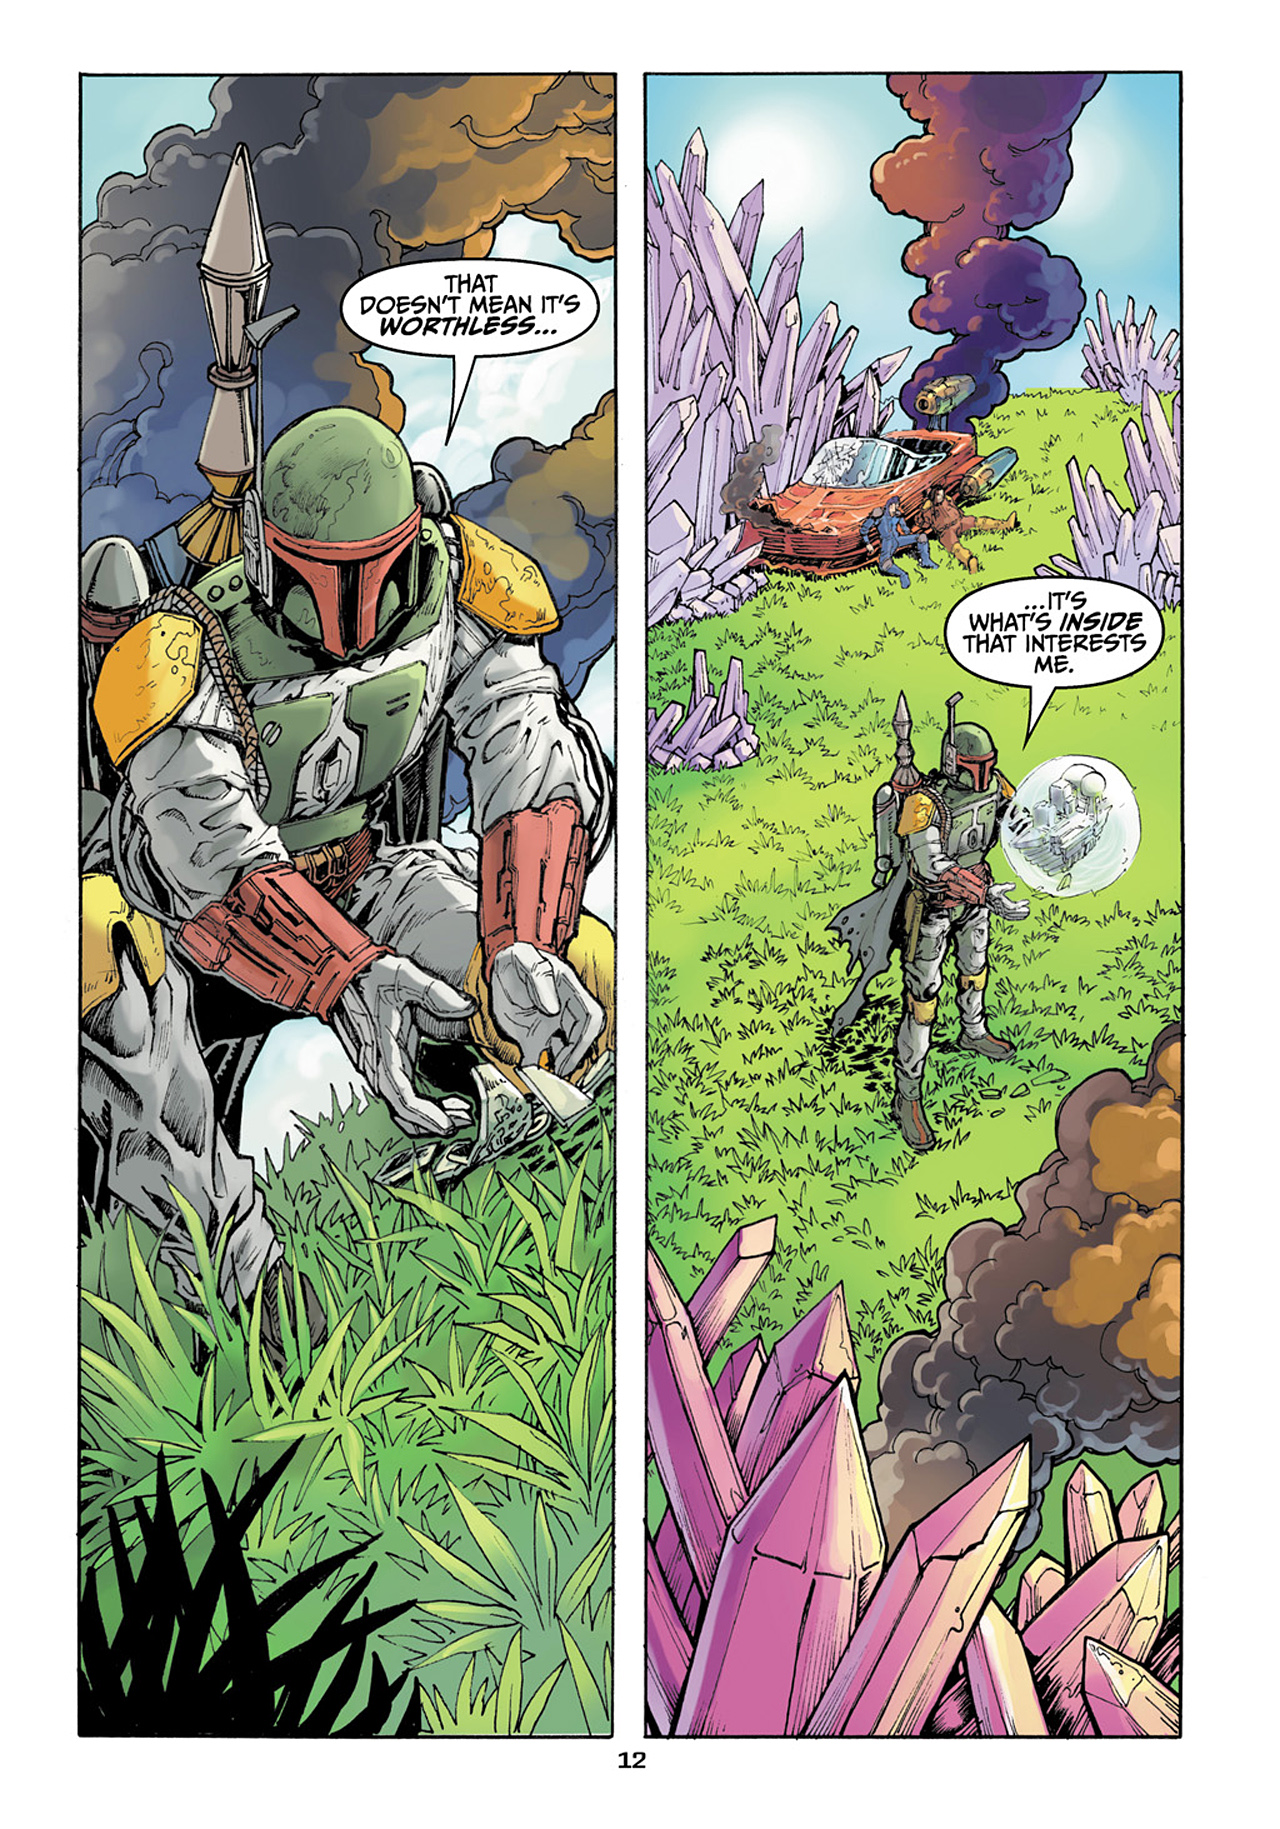 Read online Star Wars Adventures comic -  Issue # Issue Boba Fett and the Ship of Fear - 13